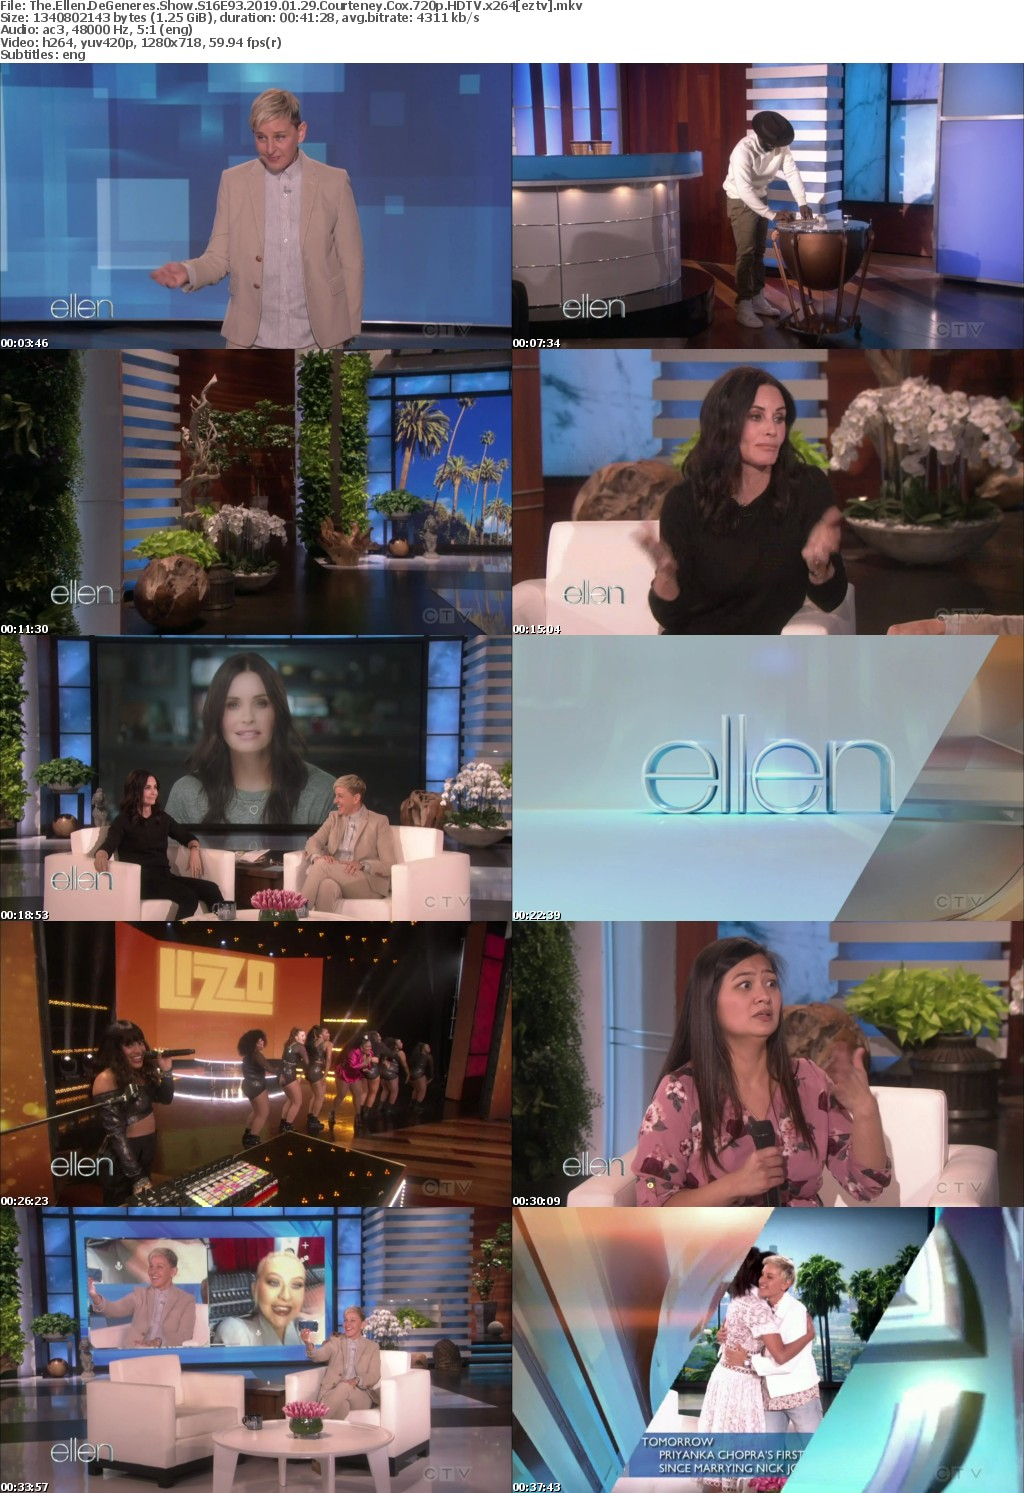 The Ellen DeGeneres Show S16E93 (2019) 01 29 Courteney Cox 720p HDTV x264